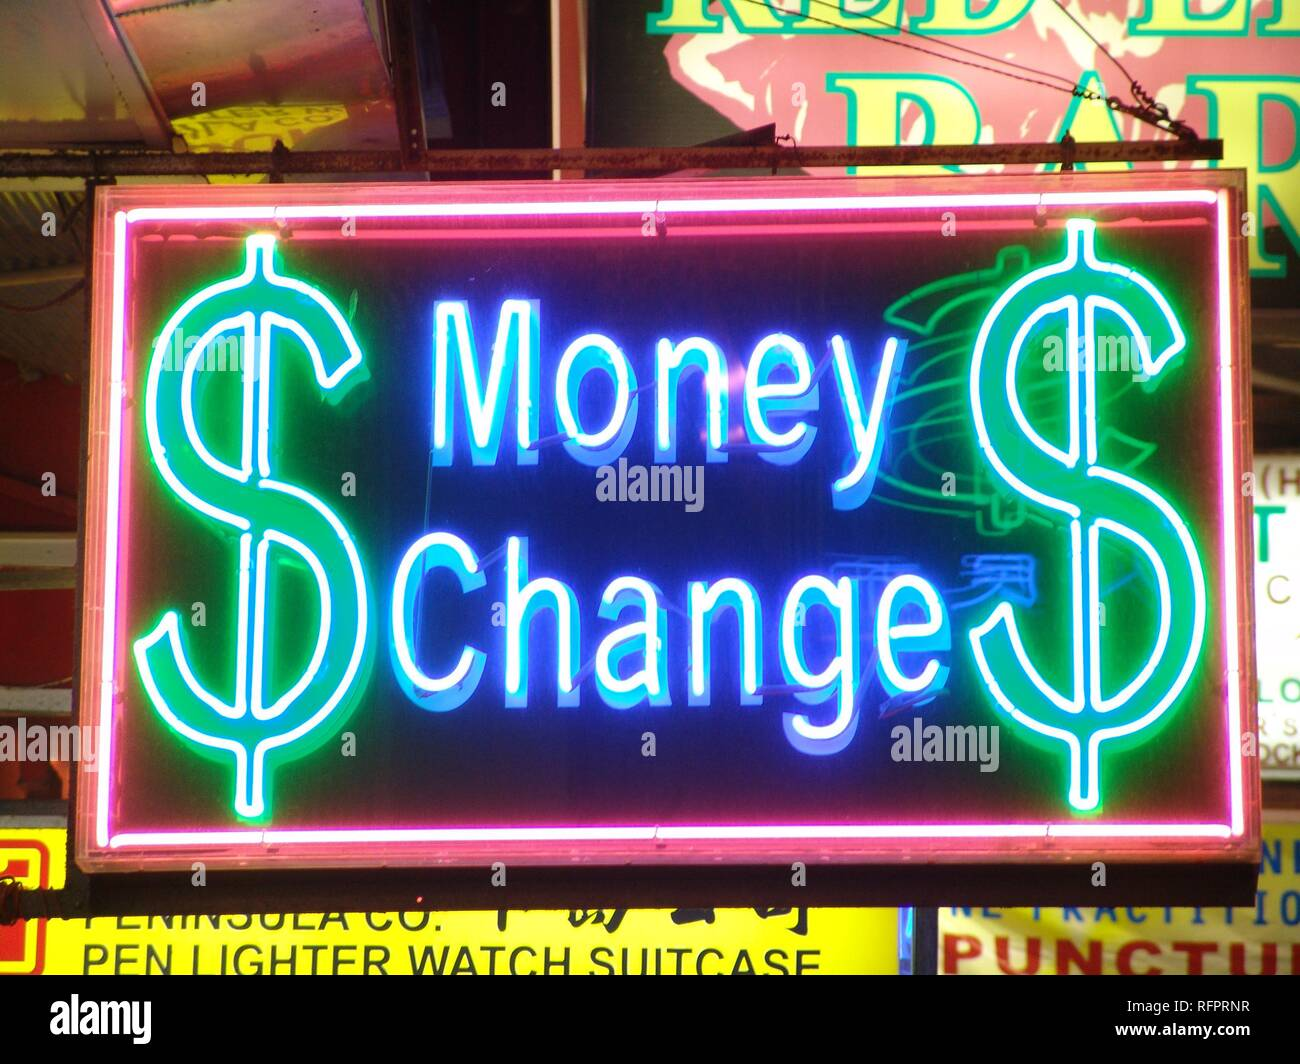 Foreign Exchange Sign Stock Photos Amp Foreign Exchange Sign Stock Images Alamy